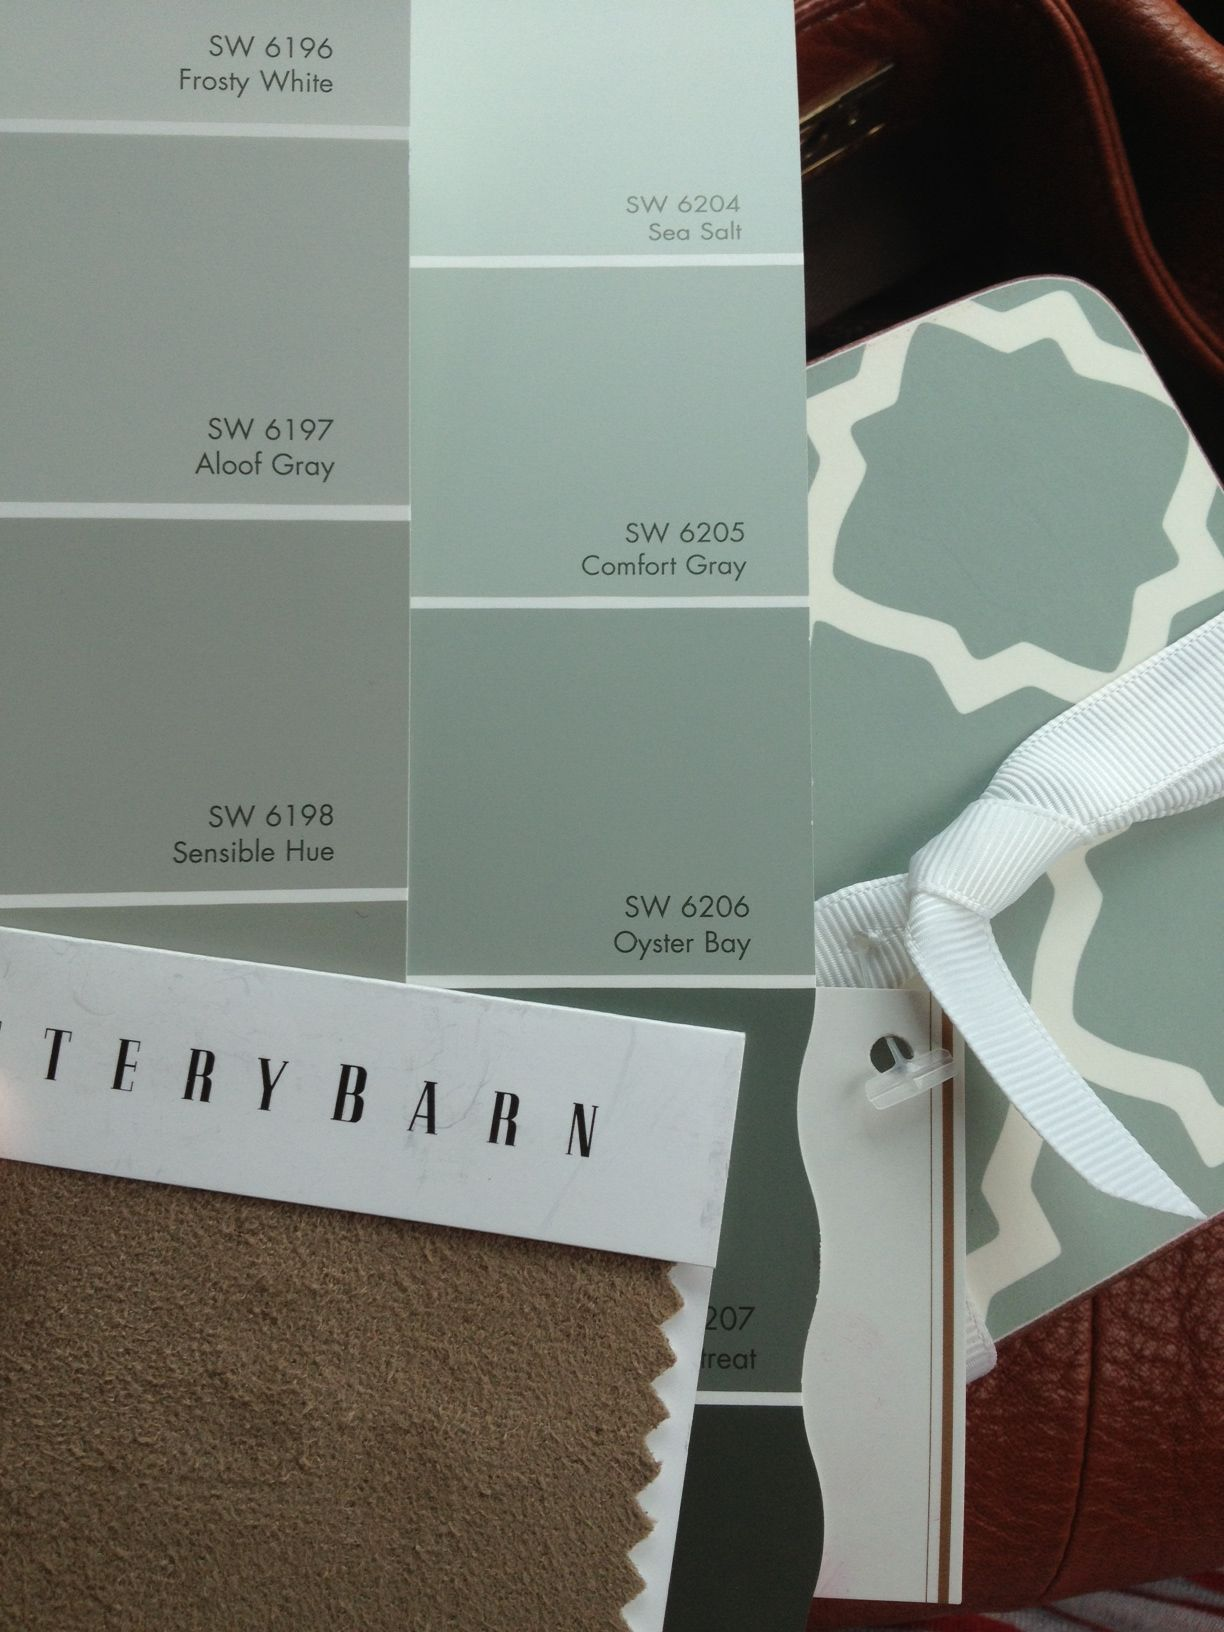 Sherwin Williams Oyster Bay for the dining room and Sensible Hue for the rest of the downstairs.